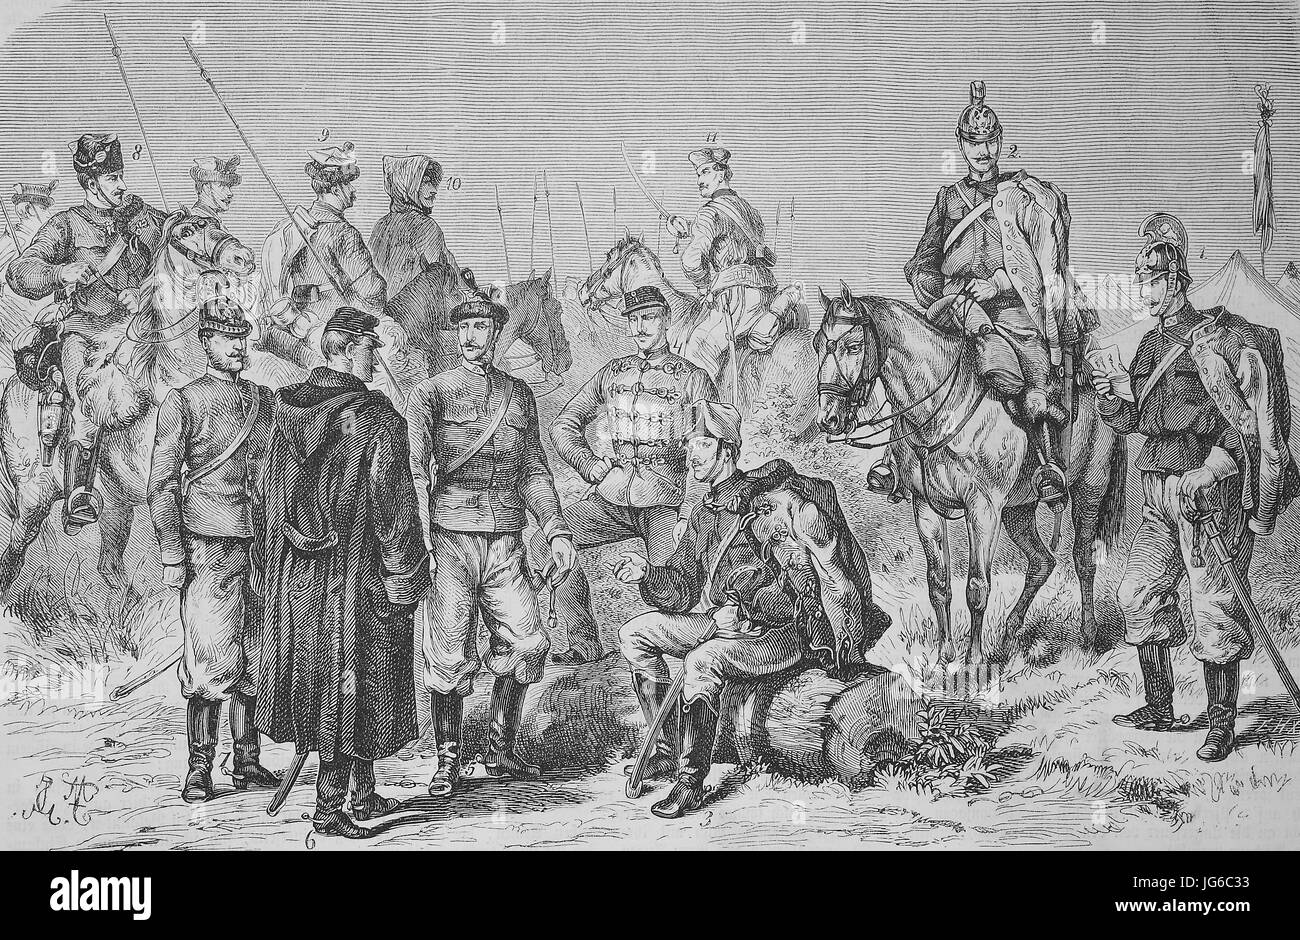 Digital improved:, The new uniform of the Austrian cavalry army, soldiers, army, Austria, illustration from the Stock Photo